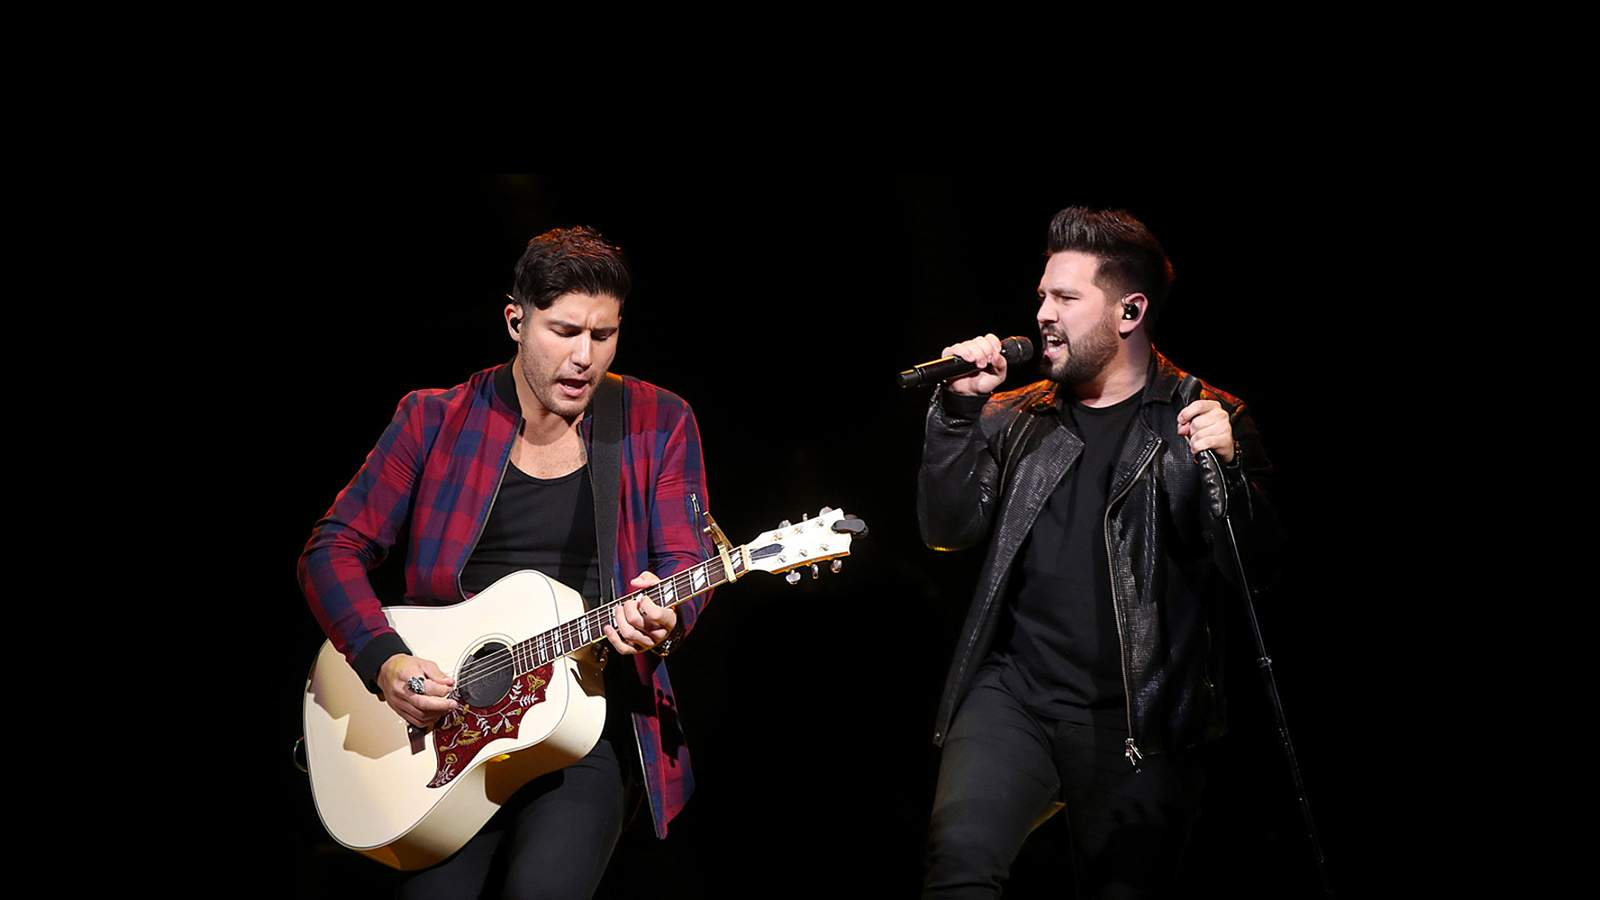 Dan and Shay (Rescheduled from 10/9/2020)